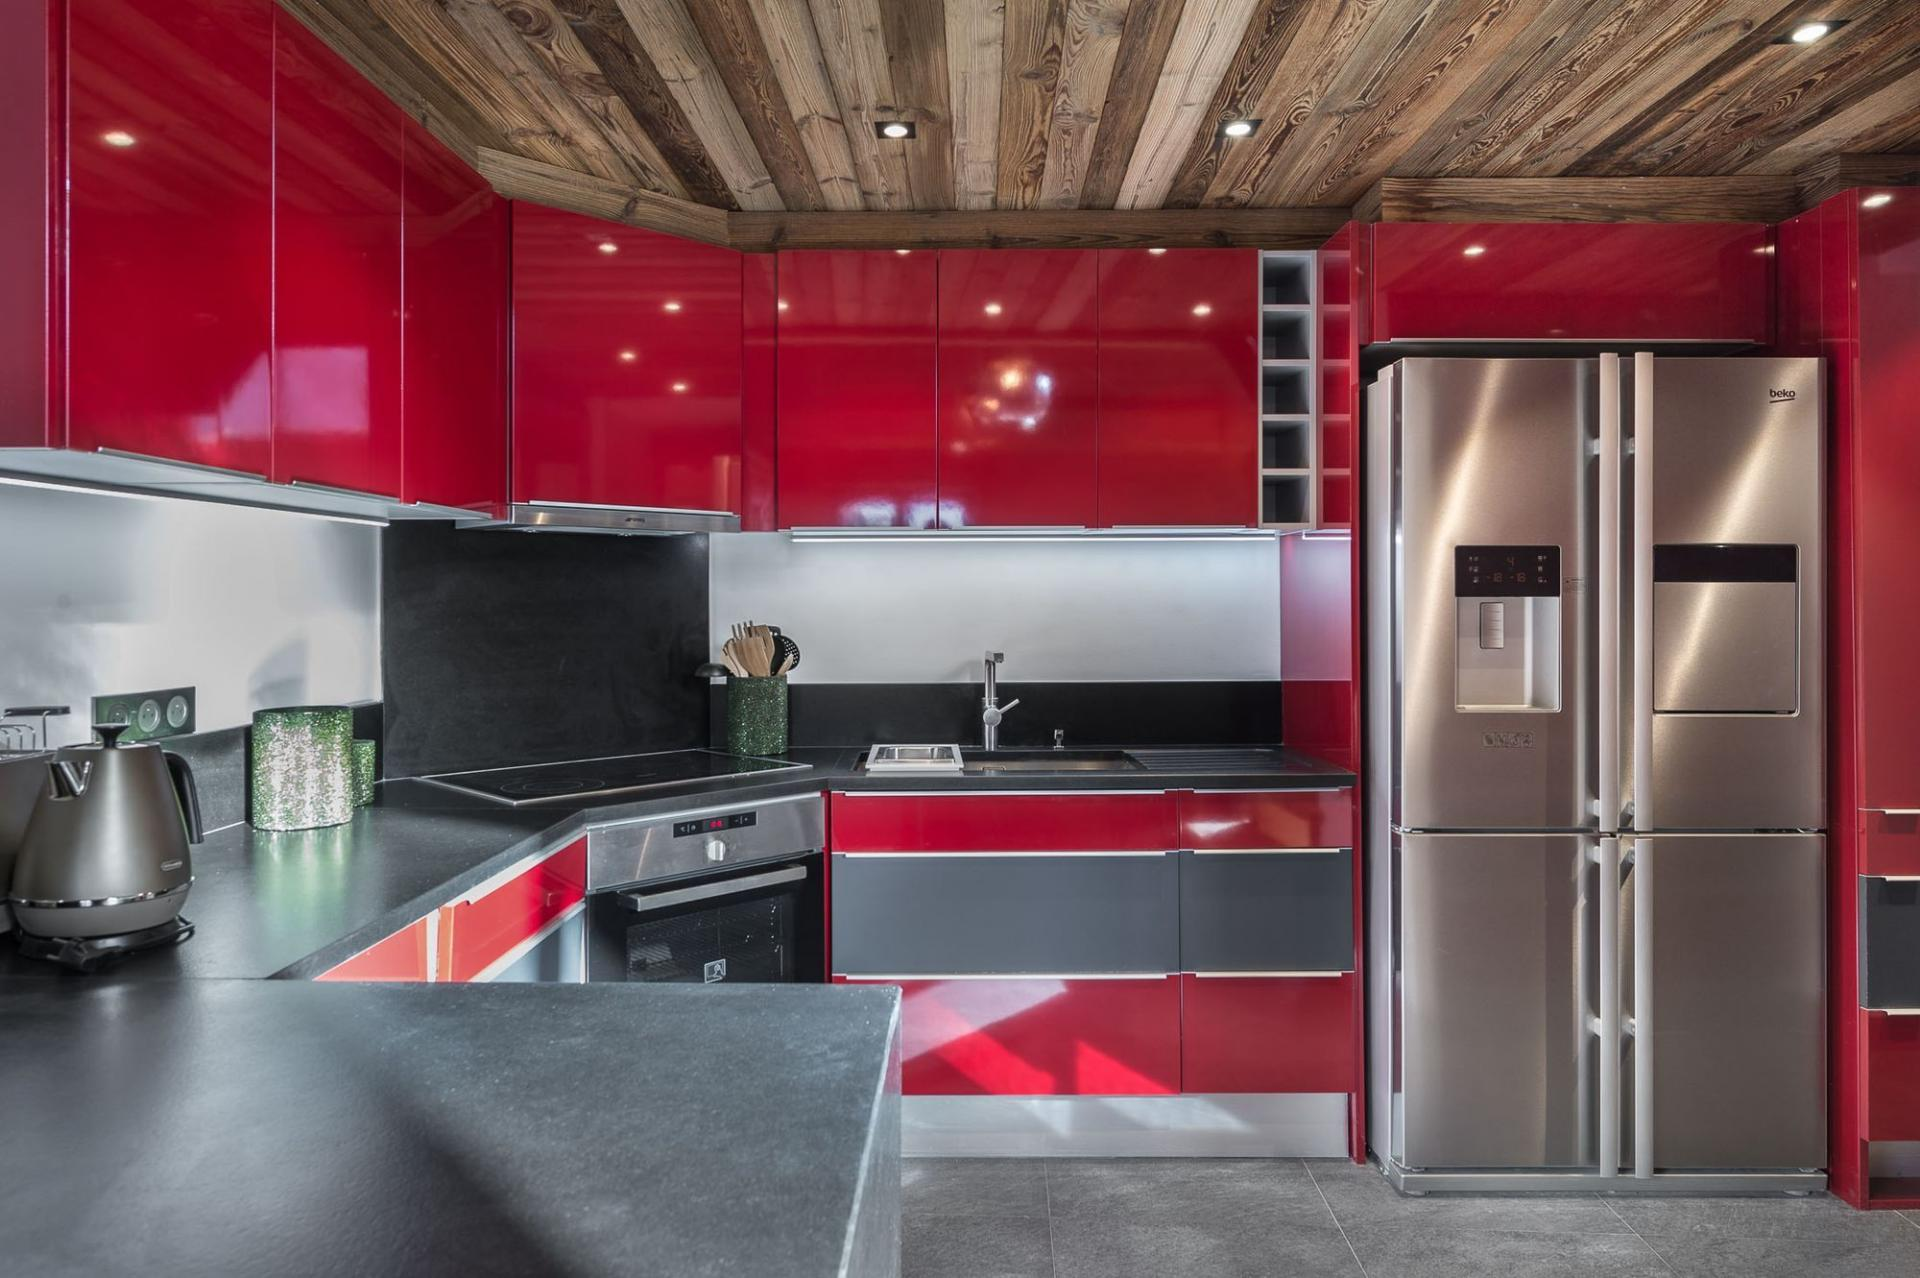 THE CONTEMPORARY KITCHEN IN THE PENTHOUSE APARTMENT IN VAL D'ISERE